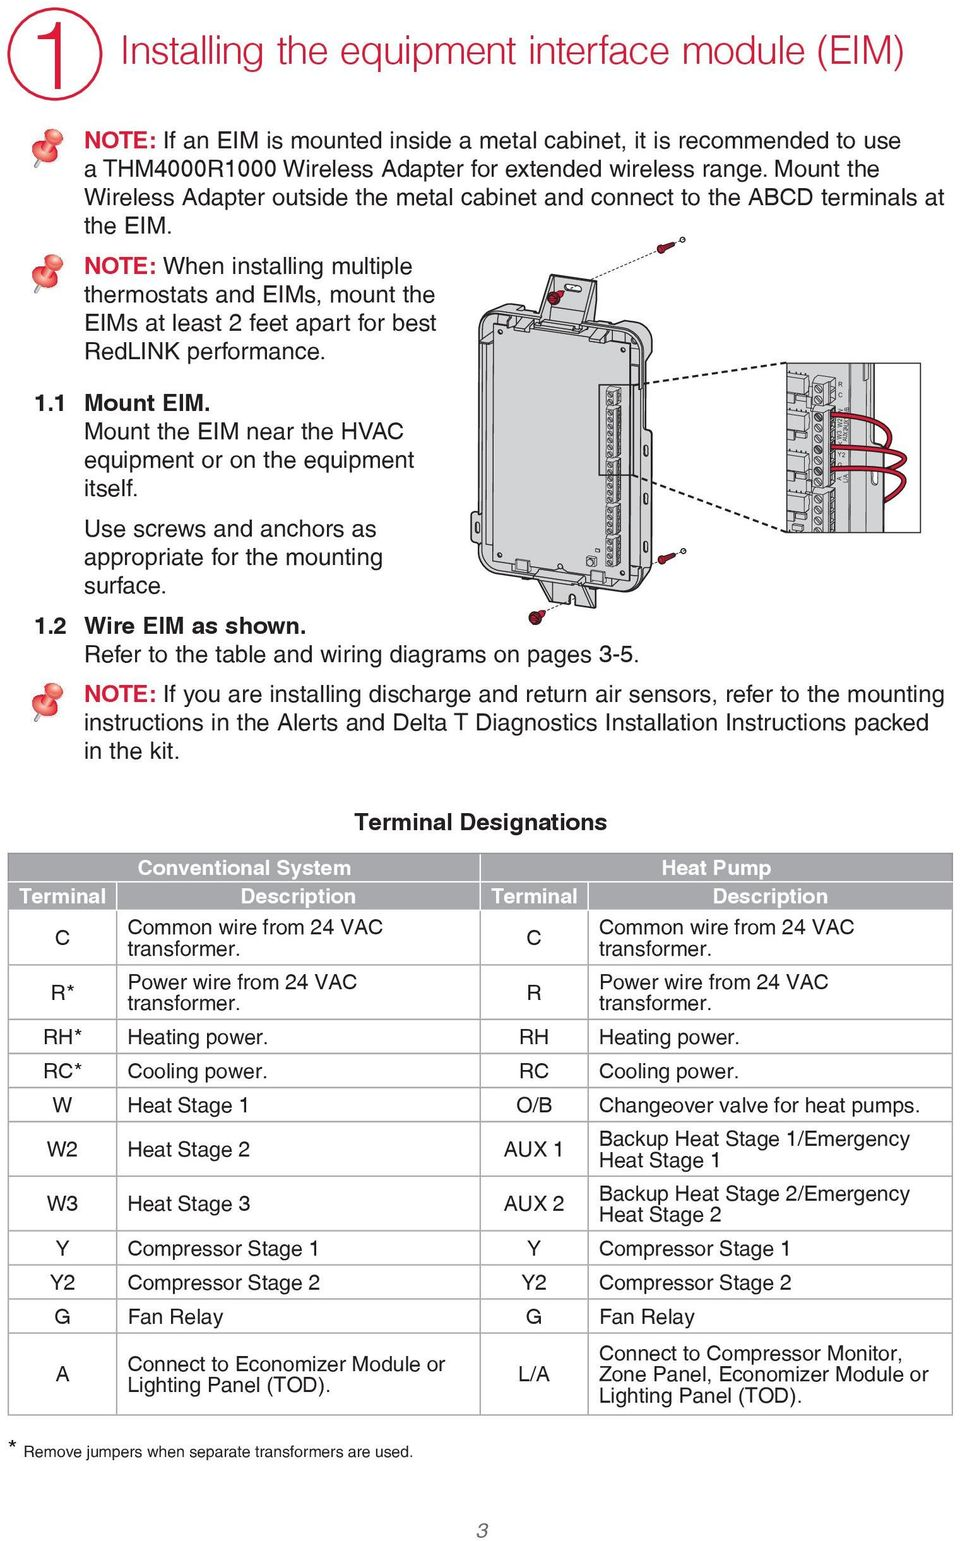 Installation Guide Prestige Iaq With Equipment Interface Module Pane Heat Pump Thermostat Wiring Diagram Note When Installing Multiple Thermostats And Eims Mount The At Least 2 Feet 4 Terminal Designations Onventional System